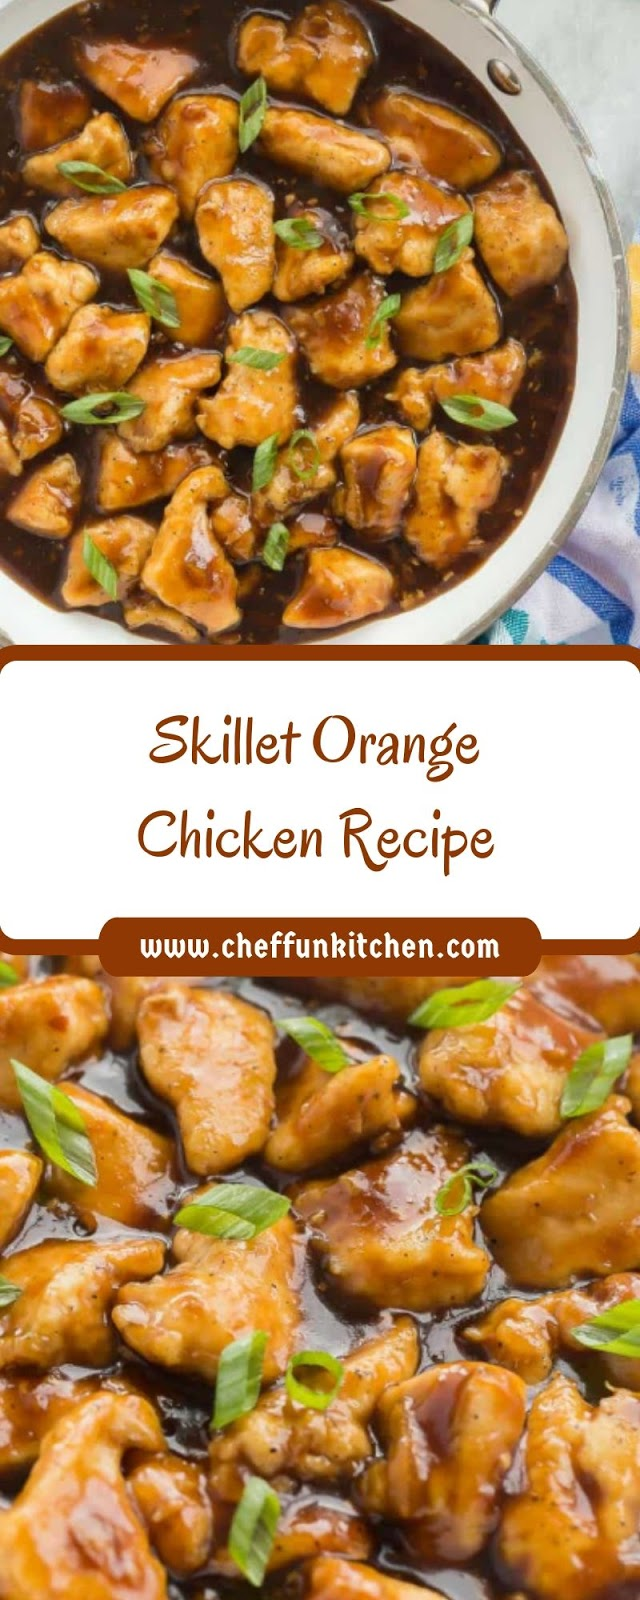 Skillet Orange Chicken Recipe